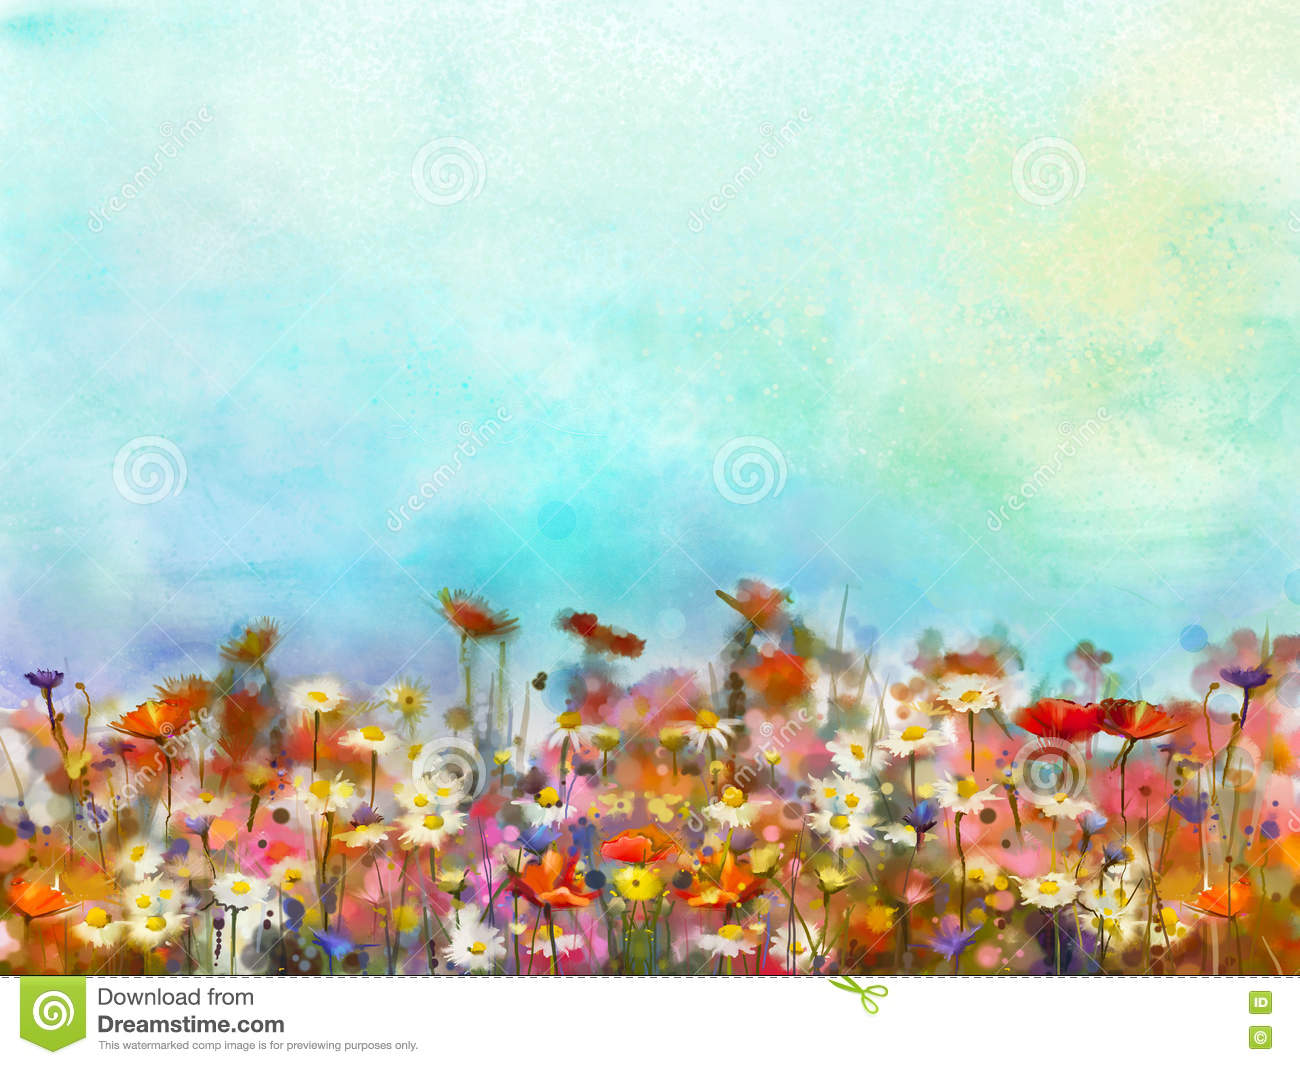 Watercolor Painting Purple Cosmos Flower Field Stock Illustration Illustration Of Hand Background 75192415